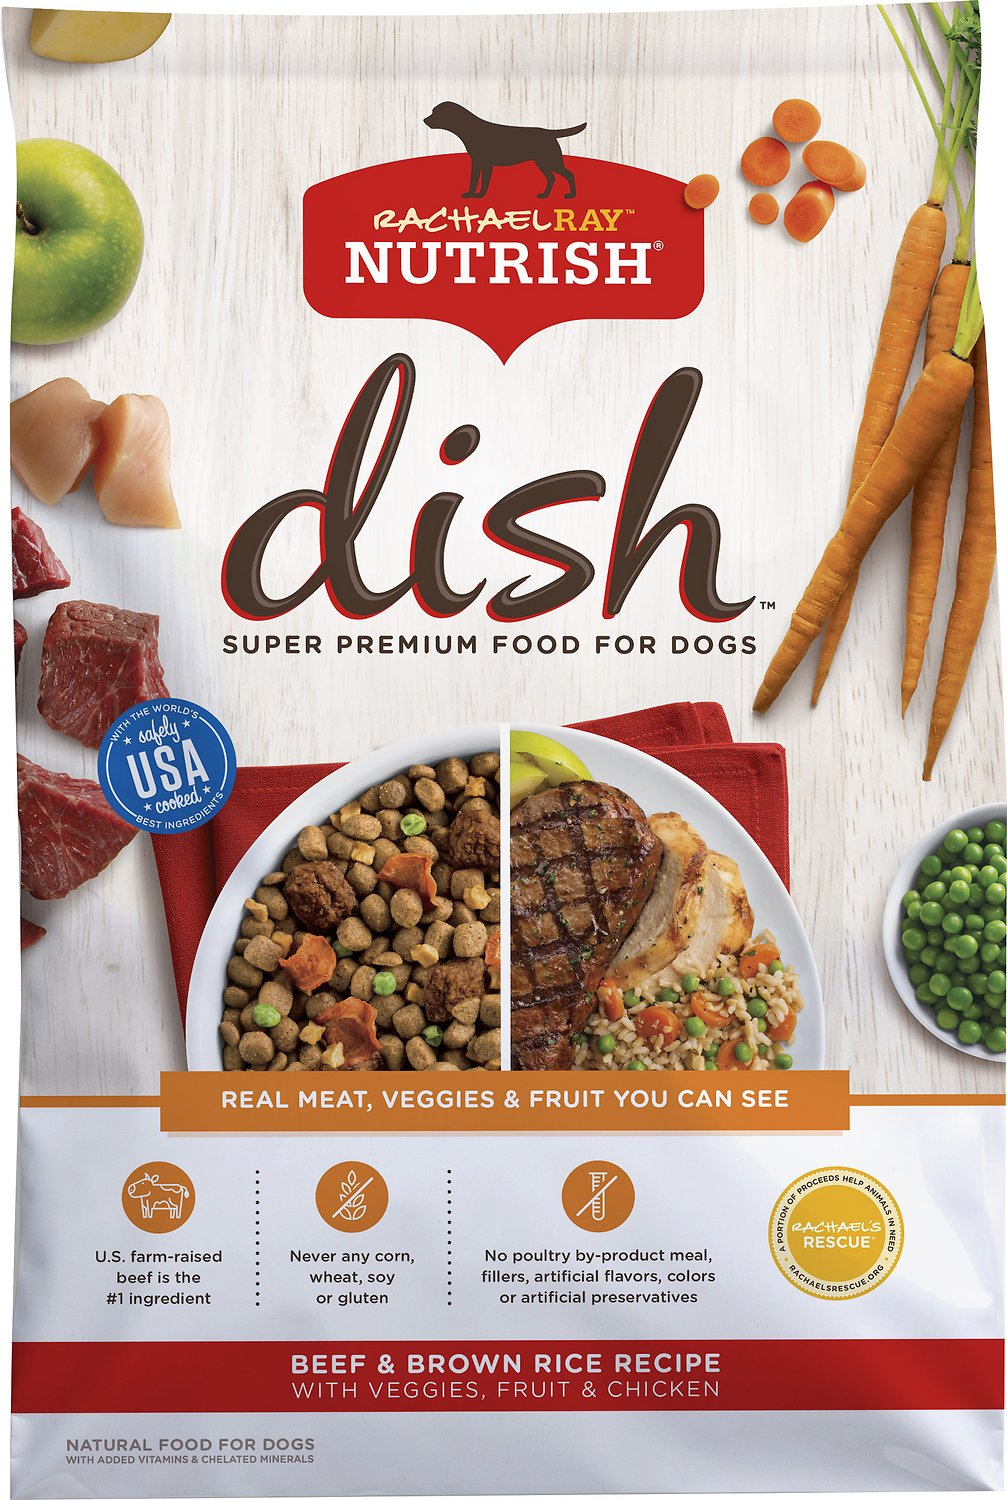 Rachael ray nutrish dish natural beef brown rice recipe with video forumfinder Image collections